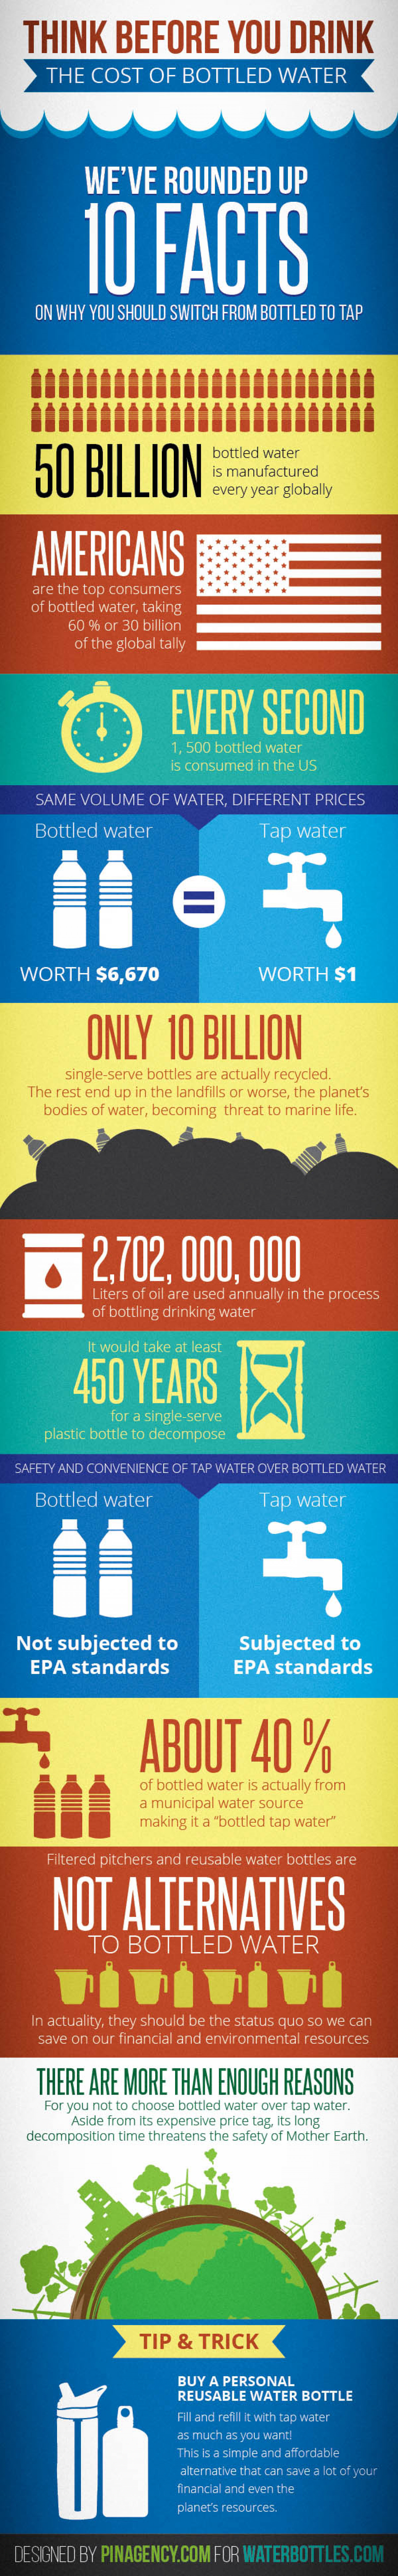 Think Before You Drink: The Costs of Bottled Water Infographic